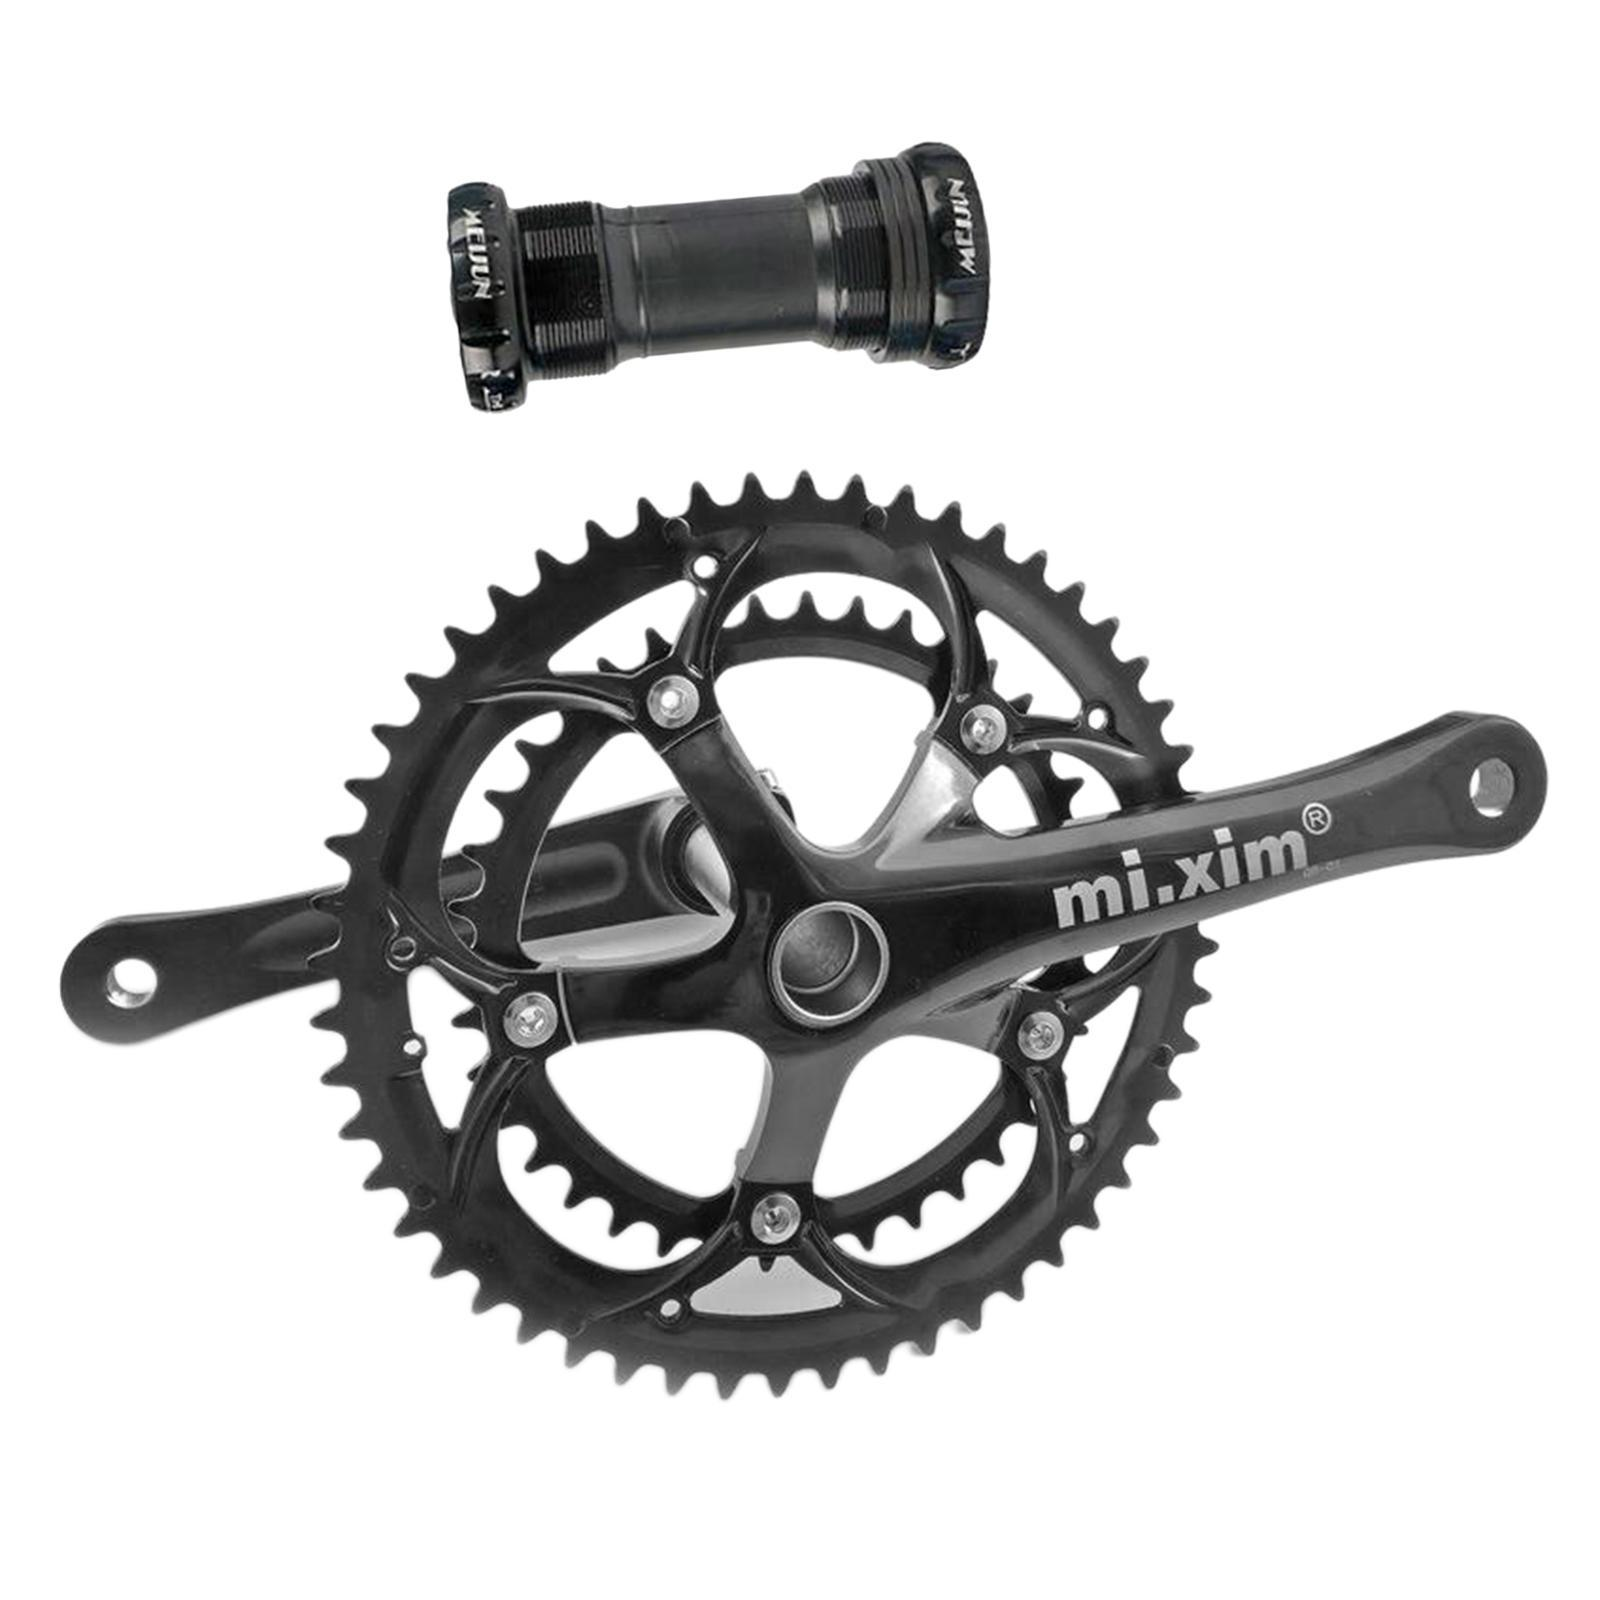 Road Bike Crankset 130BCD 170mm Crank Arm Bicycle Chainring 6-10 Speed Square BB